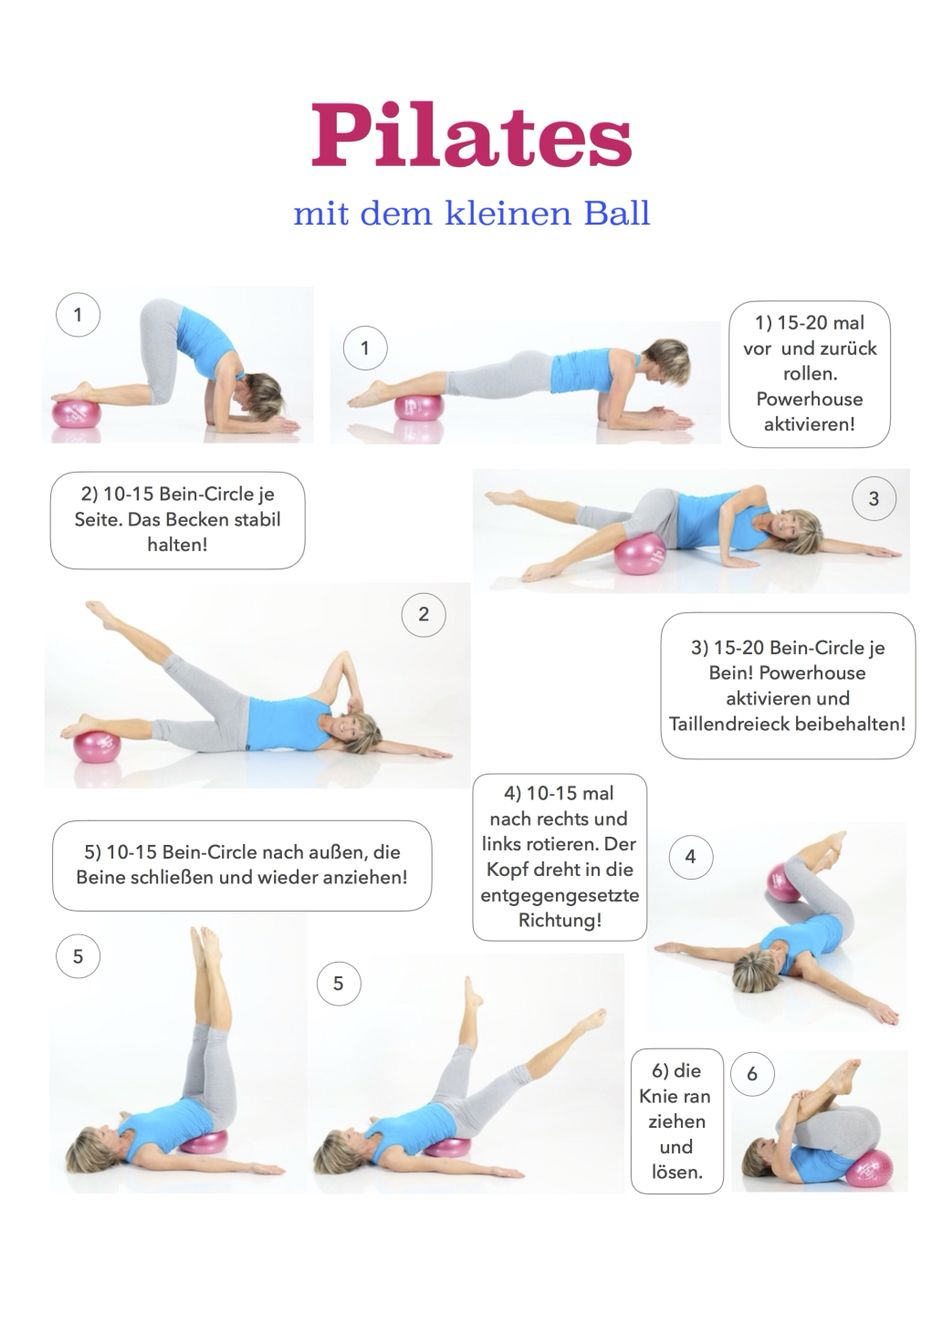 pilates mit dem kleinen ball sport pinterest bungen gesundheit und fitness bungen. Black Bedroom Furniture Sets. Home Design Ideas